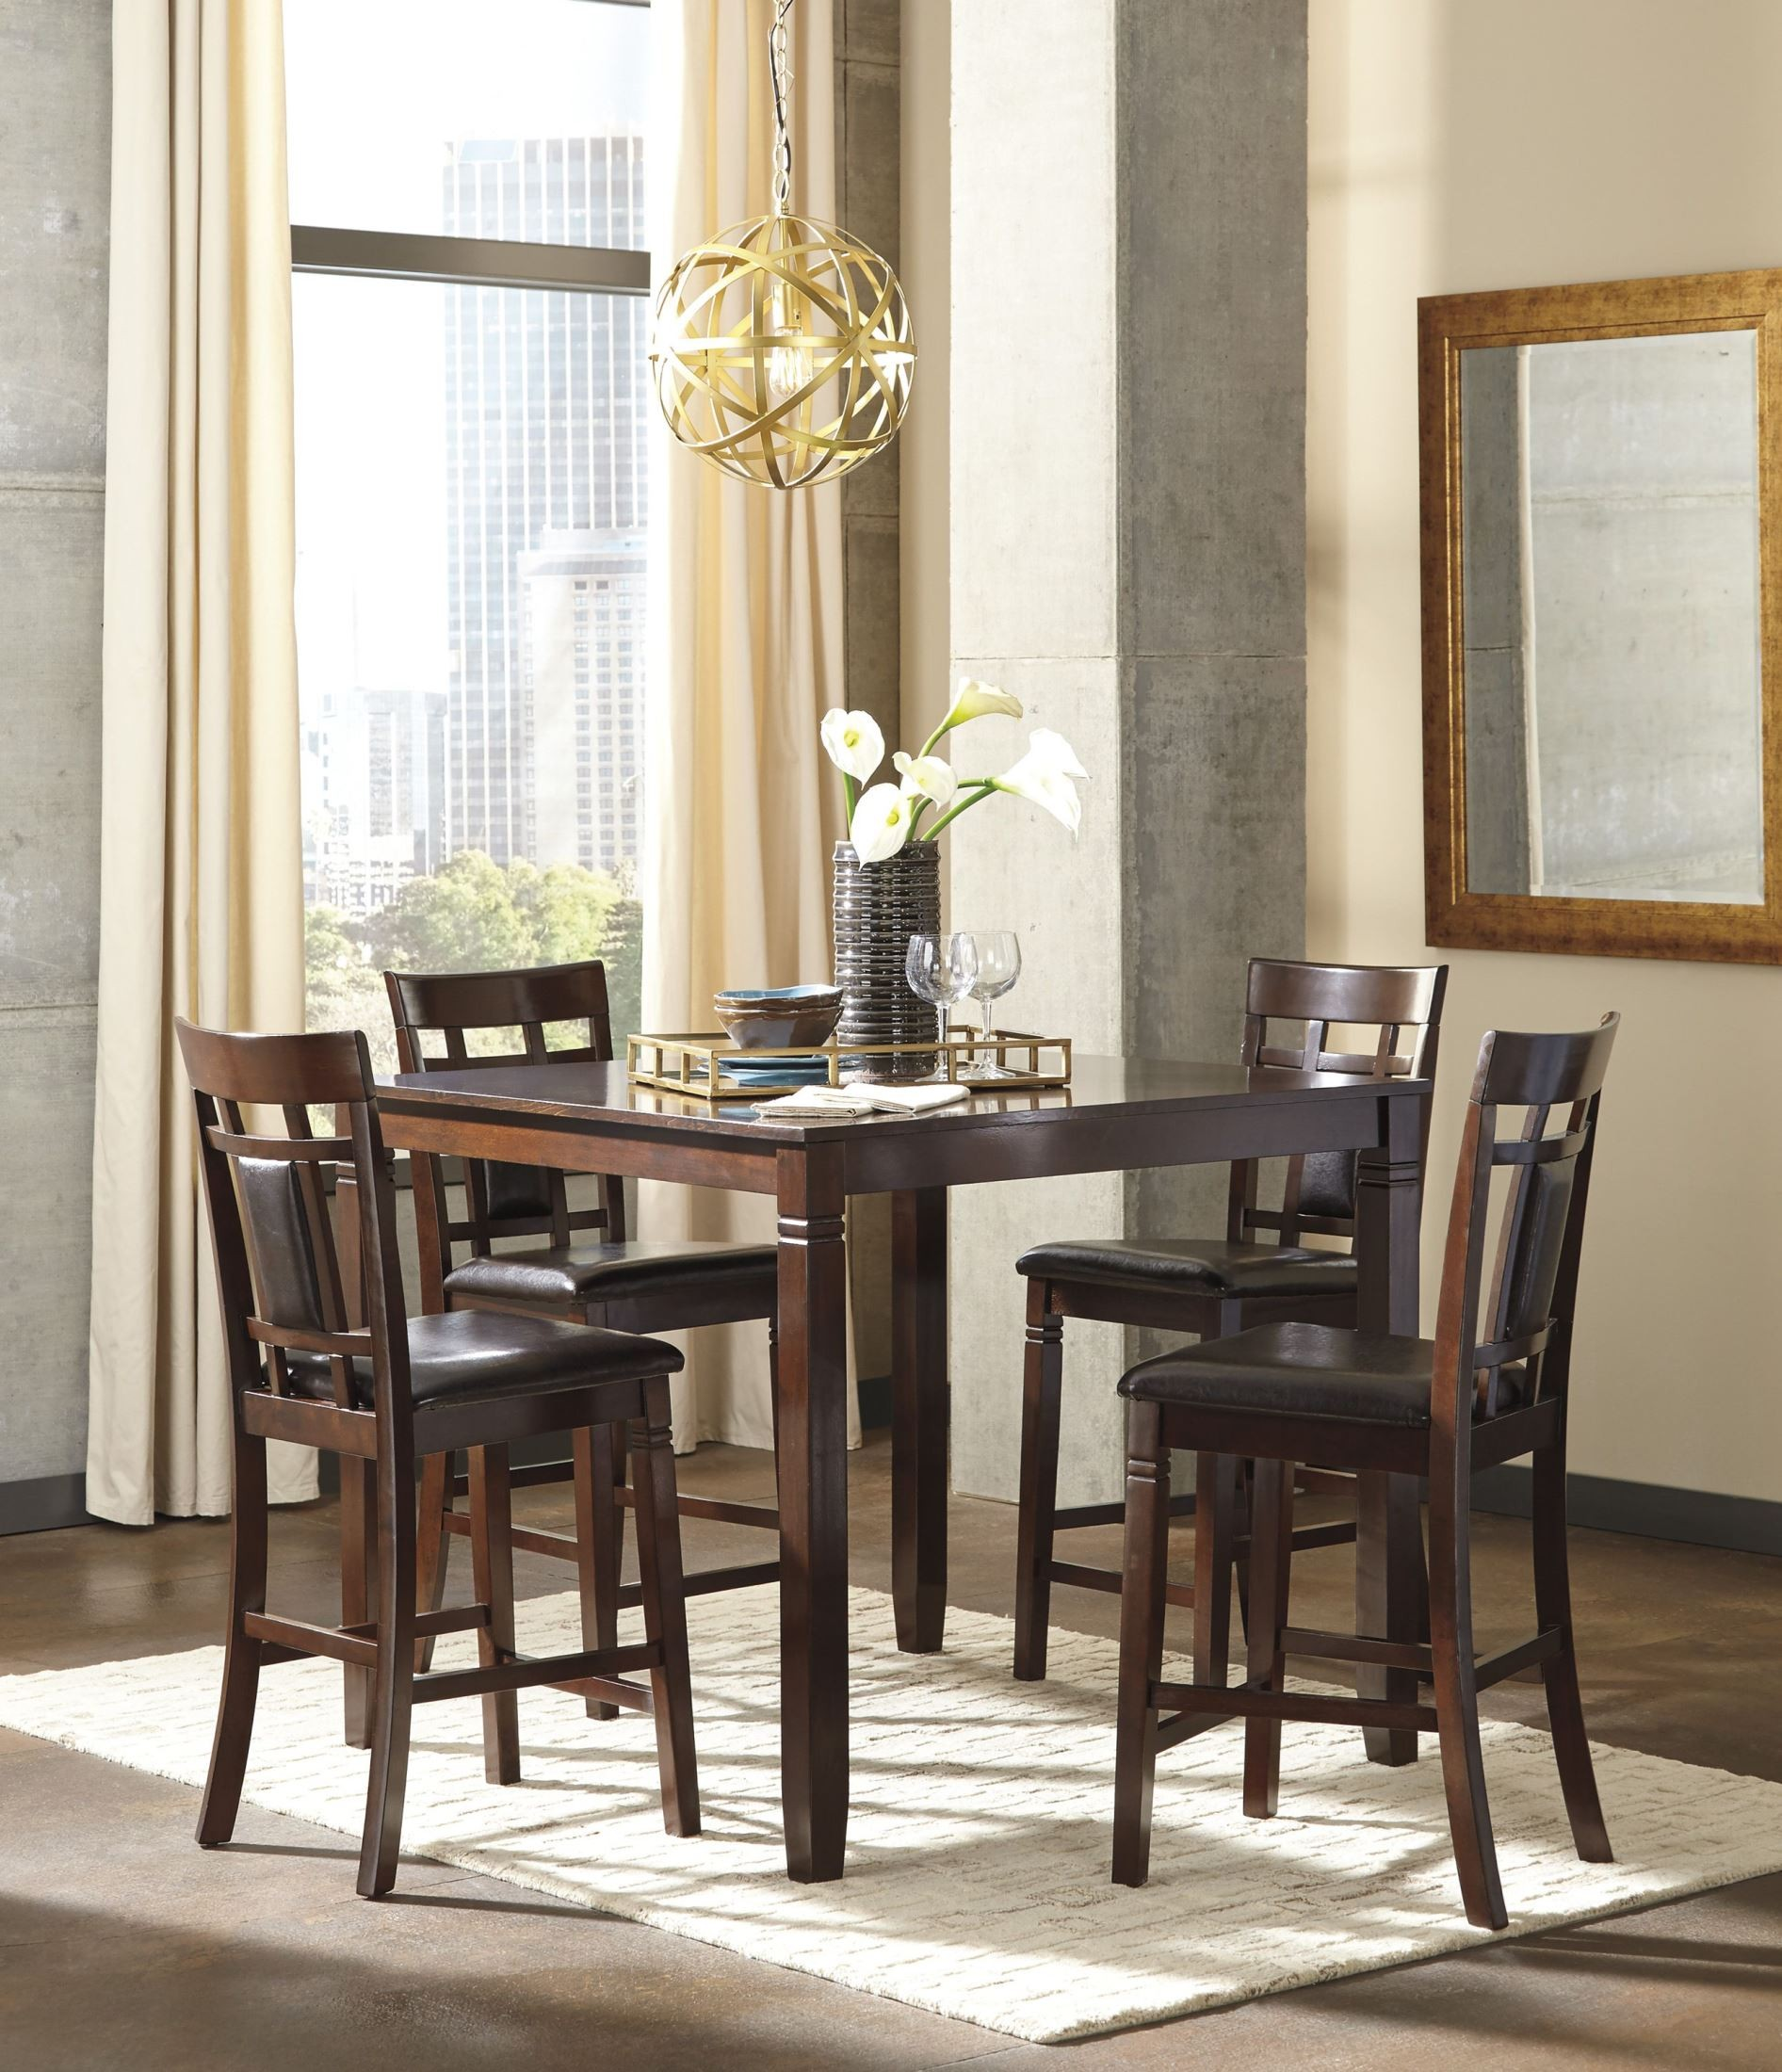 Bennox brown 5 piece counter height dining room set d384 for 5 piece dining room sets